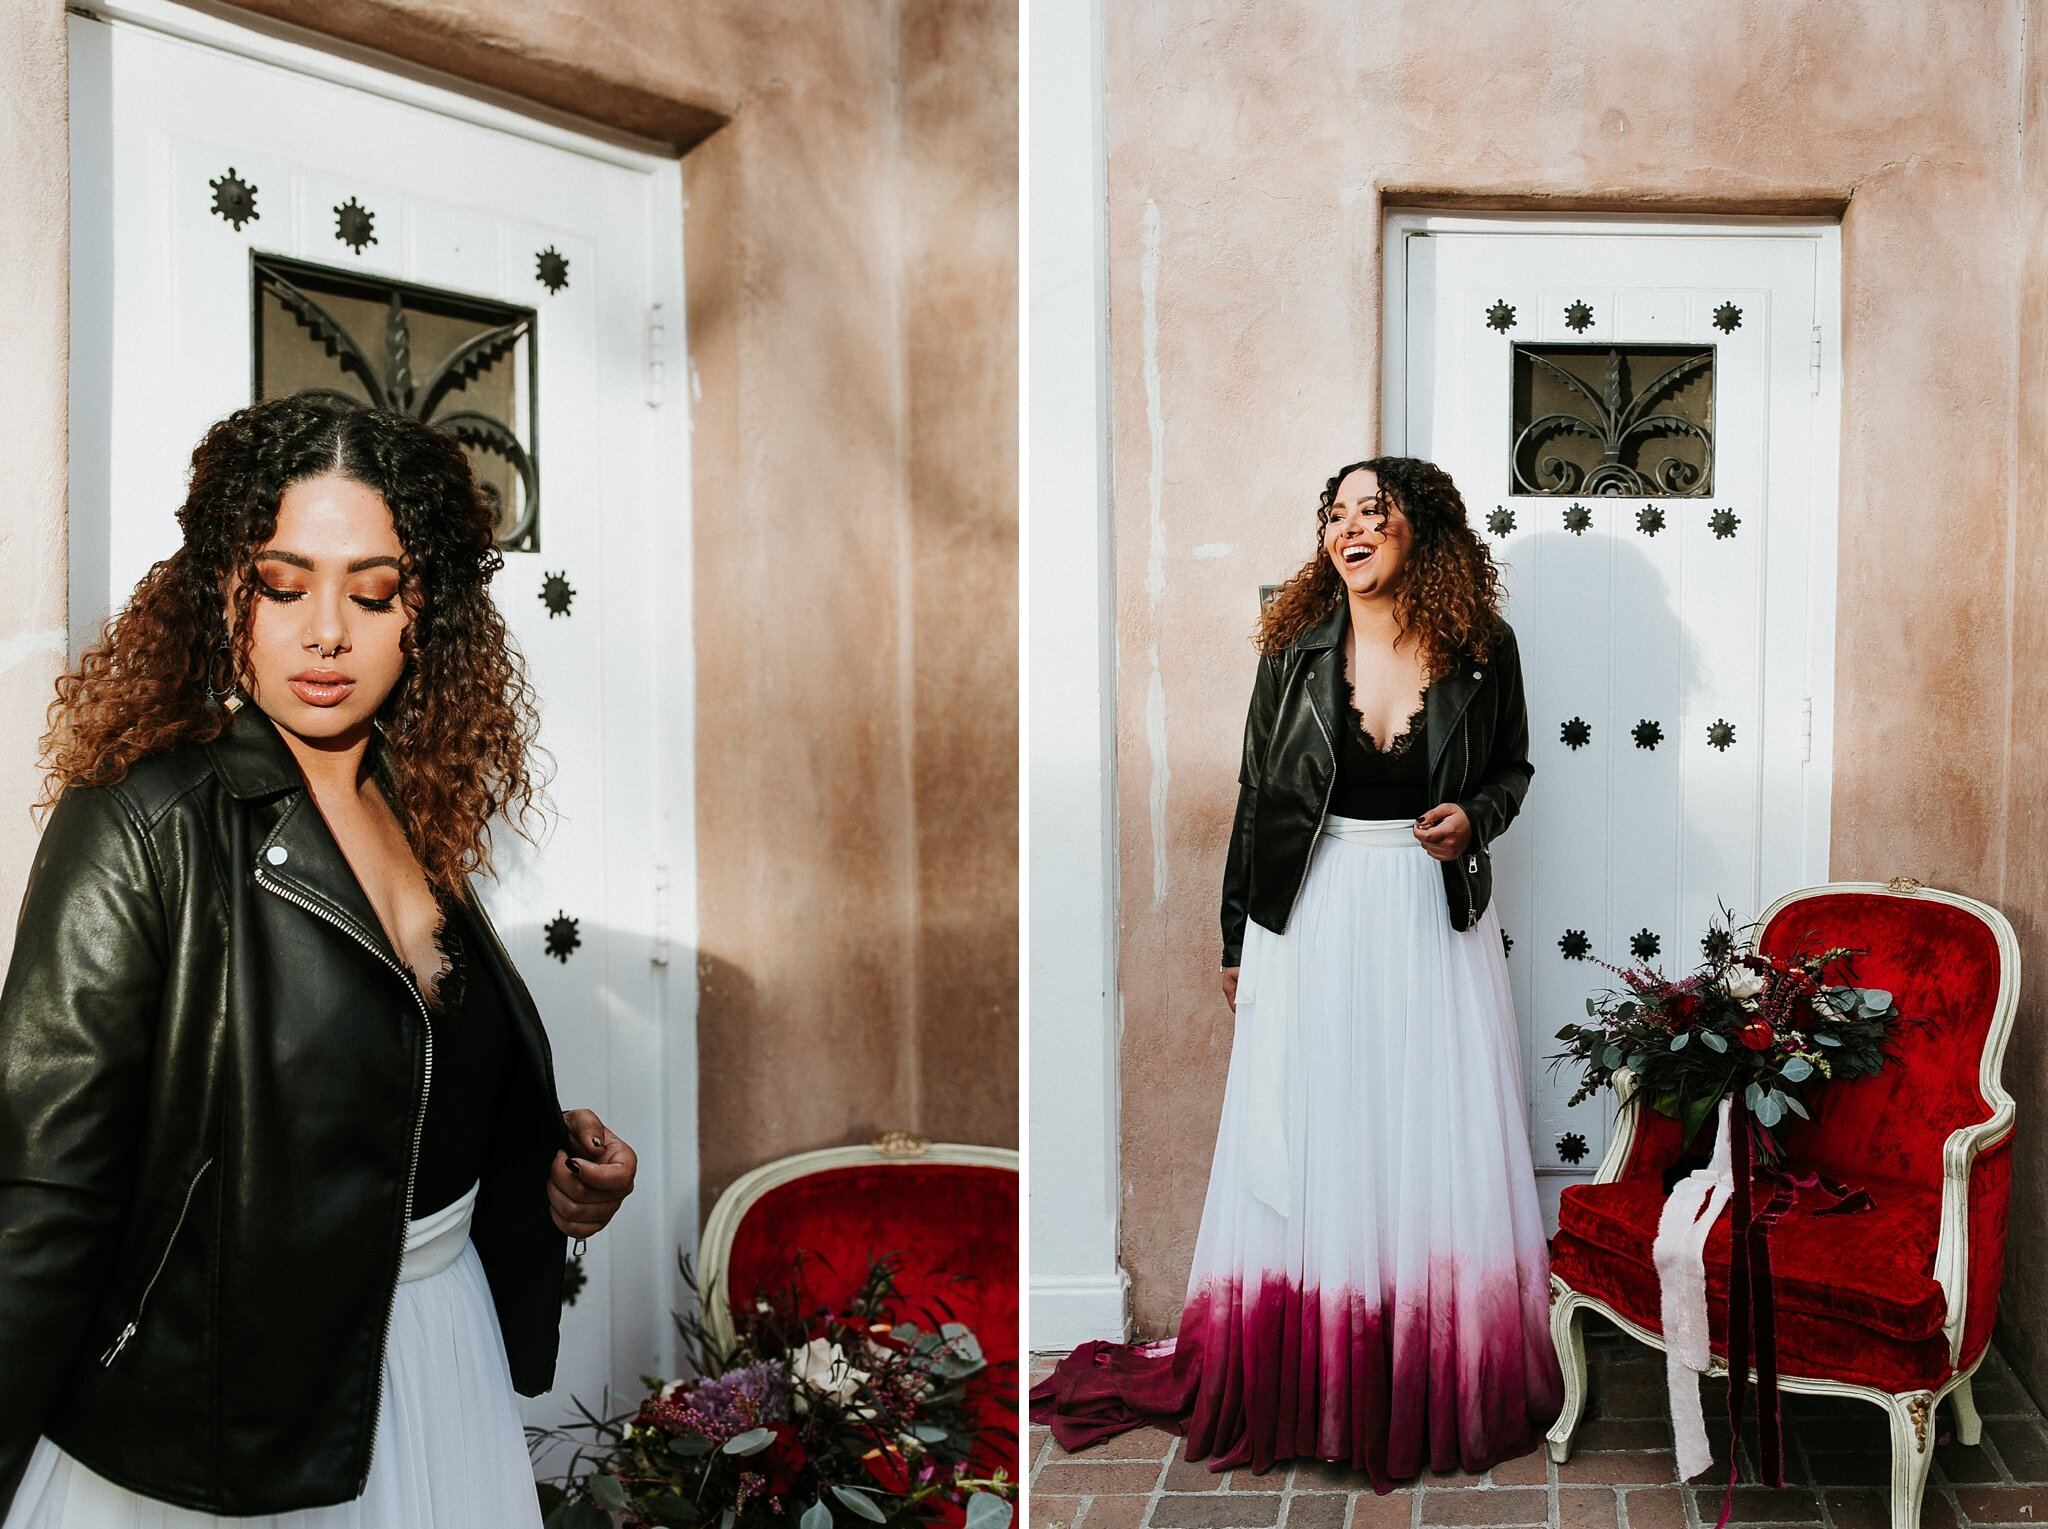 Alicia+lucia+photography+-+albuquerque+wedding+photographer+-+santa+fe+wedding+photography+-+new+mexico+wedding+photographer+-+new+mexico+wedding+-+wedding+makeup+-+wedidng+hair+-+wedding+makeup+artist+-+wedding+hair+stylist+-+drs+color+studio_0033.jpg